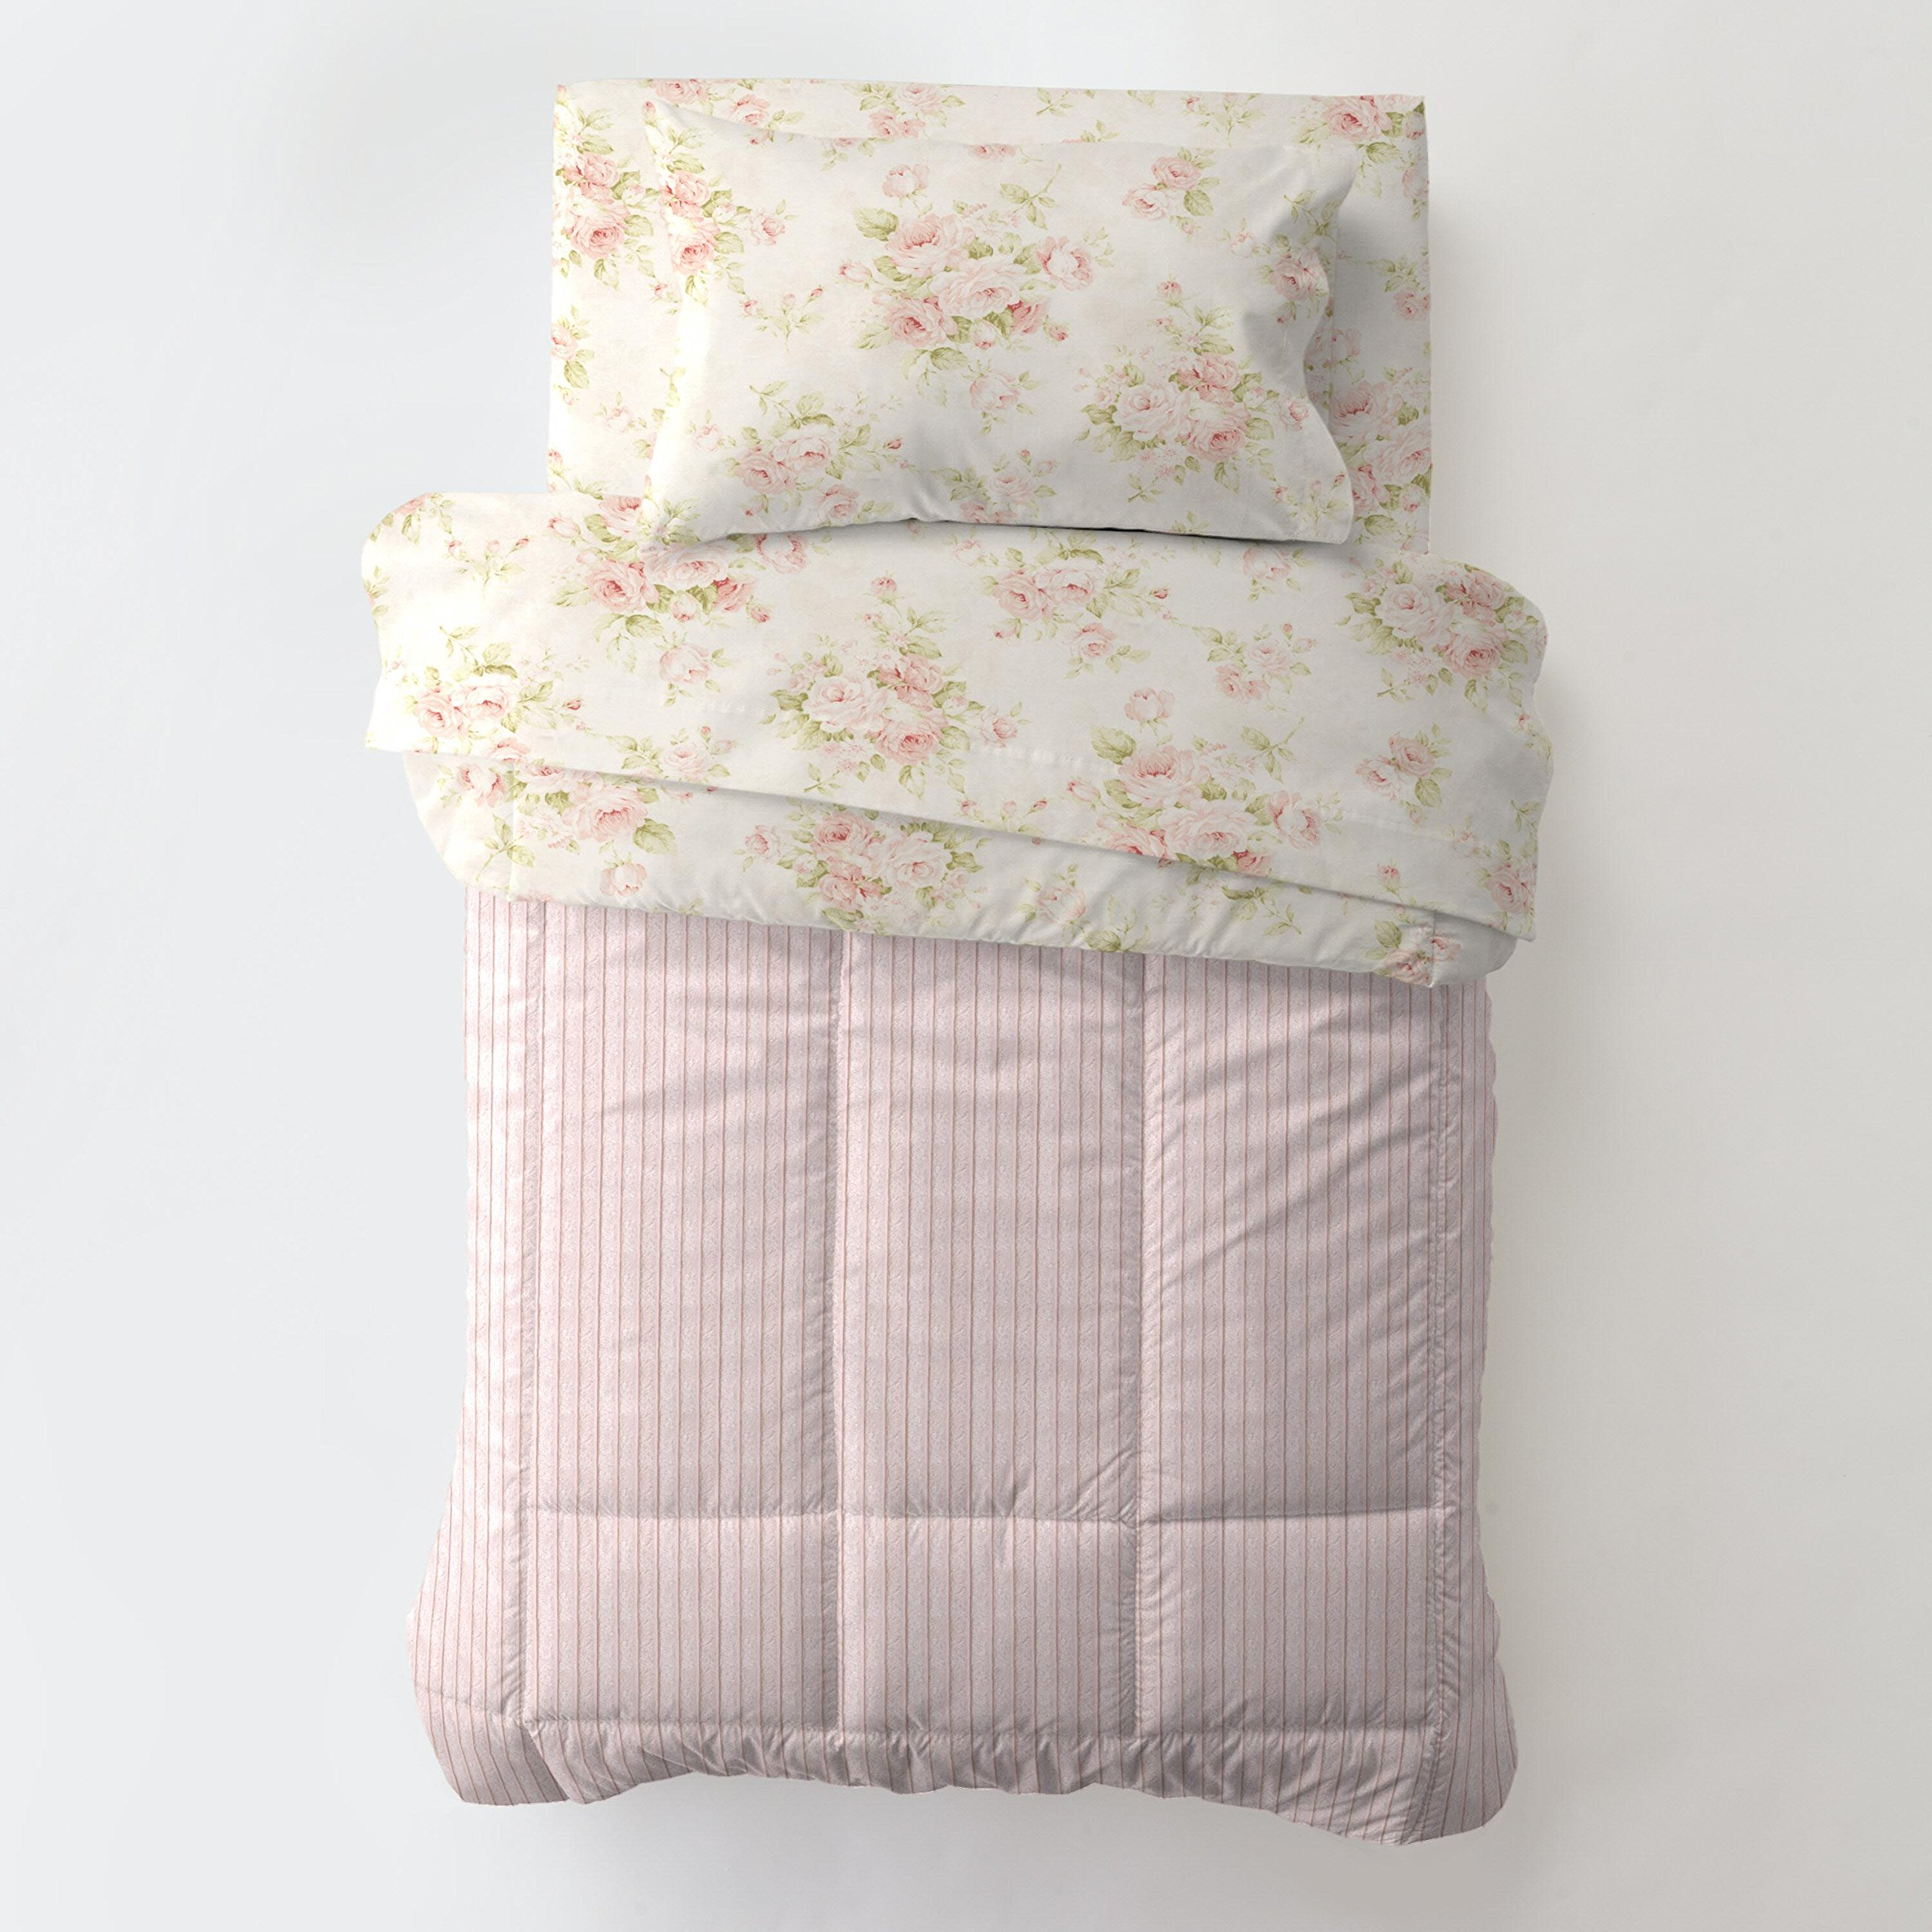 Carousel Designs Shabby Chenille Toddler Bed Comforter by Carousel Designs